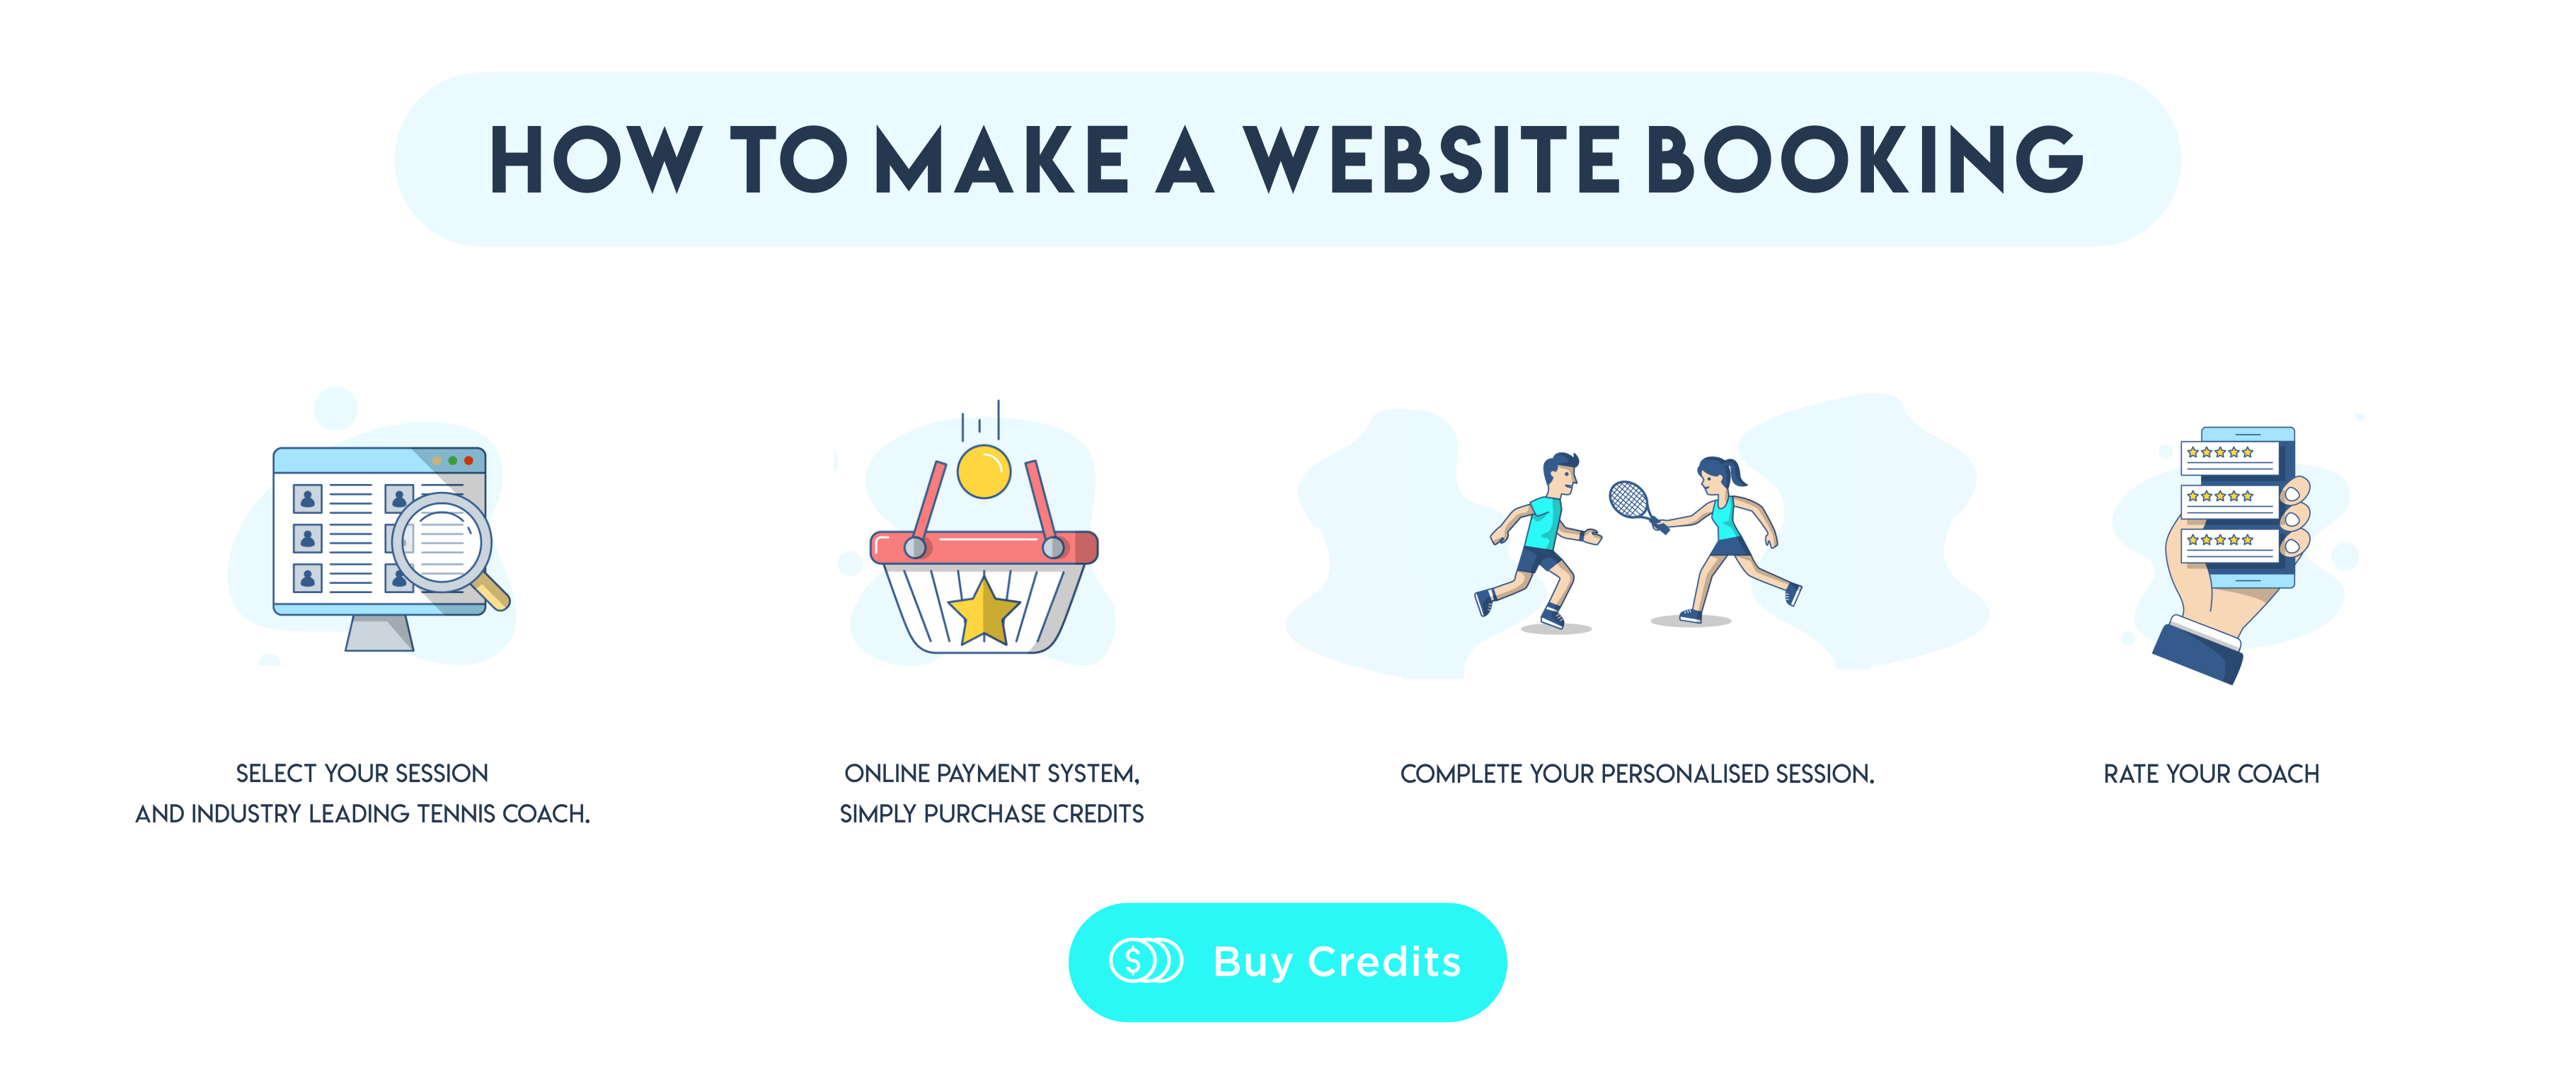 How to make a website booking